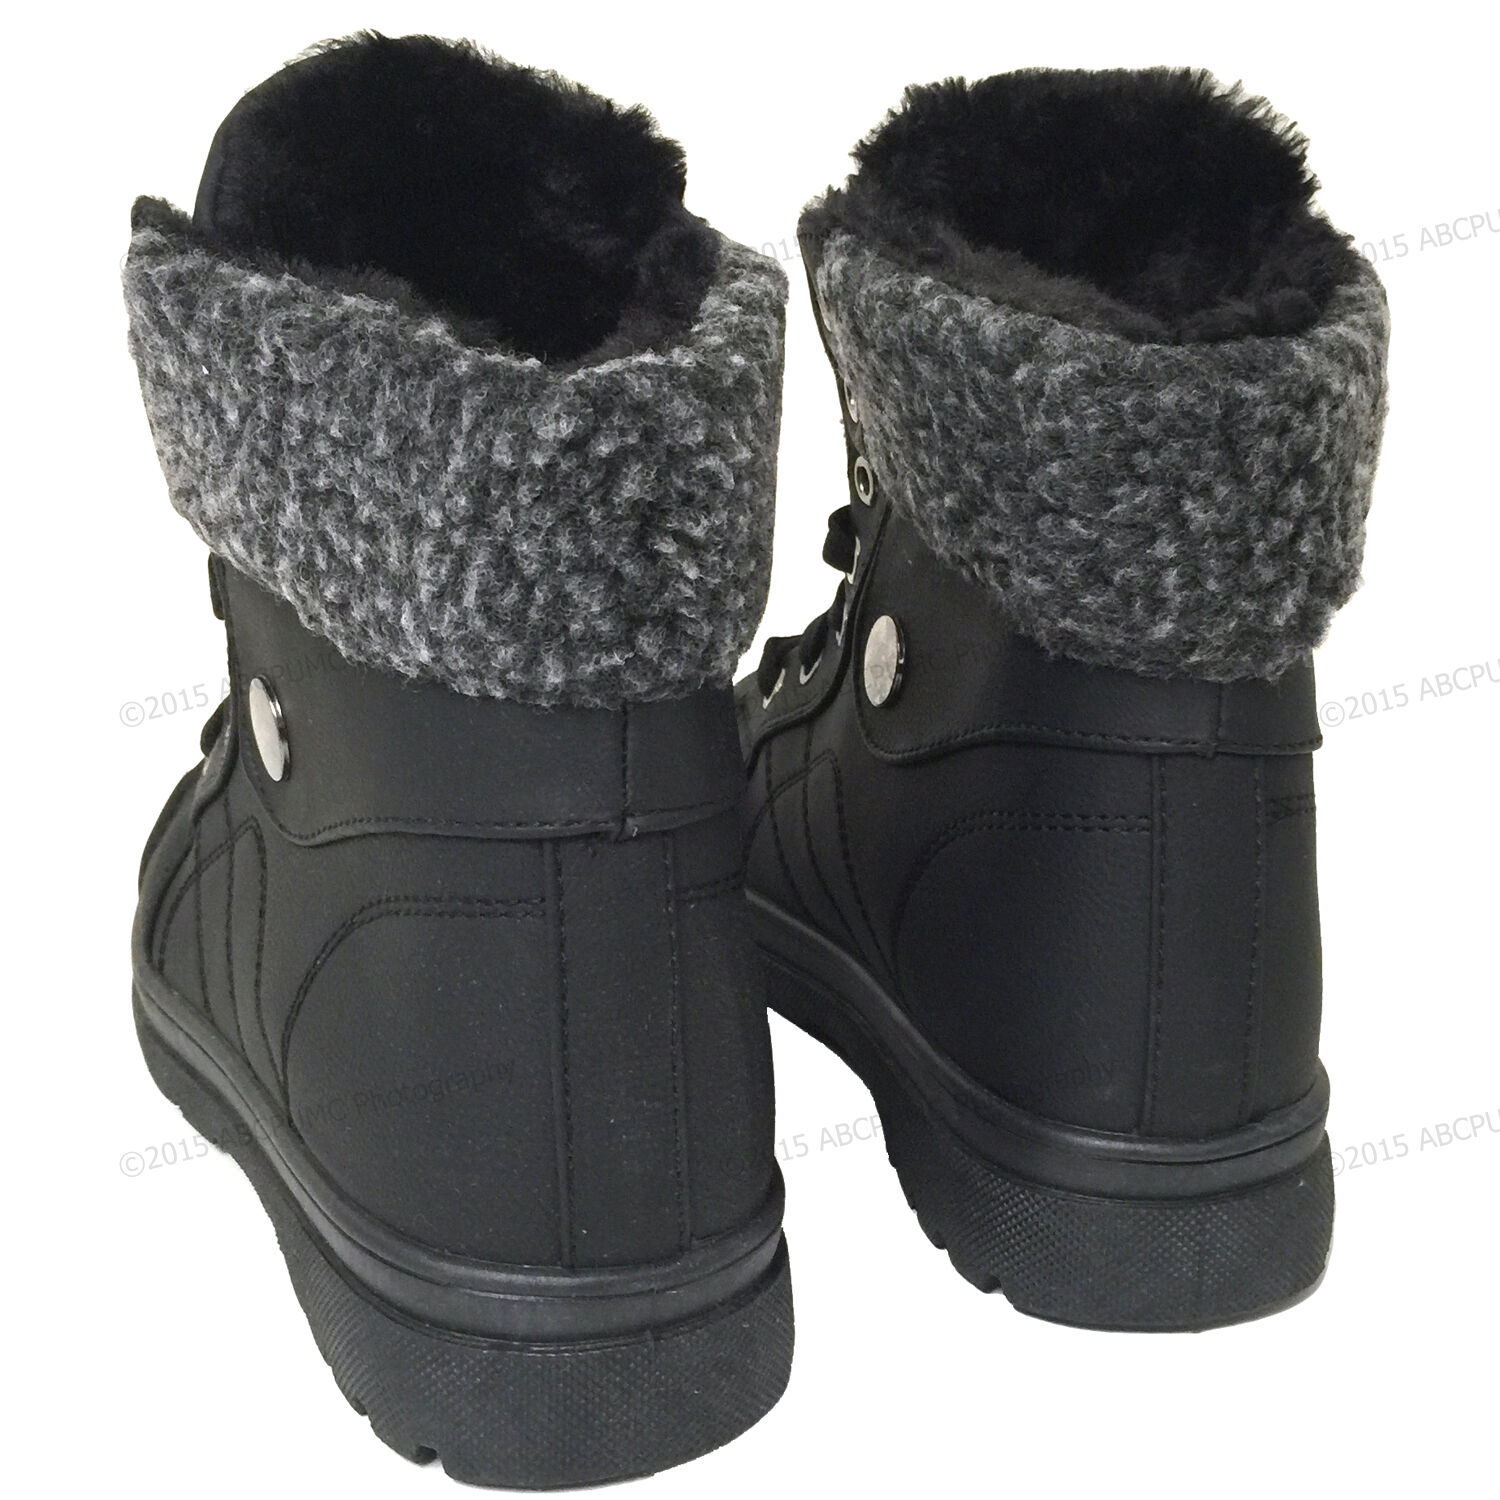 Women's Sneaker Boots Winter High Top Lace up Fur Combat Warm Snow Shoes Sizes